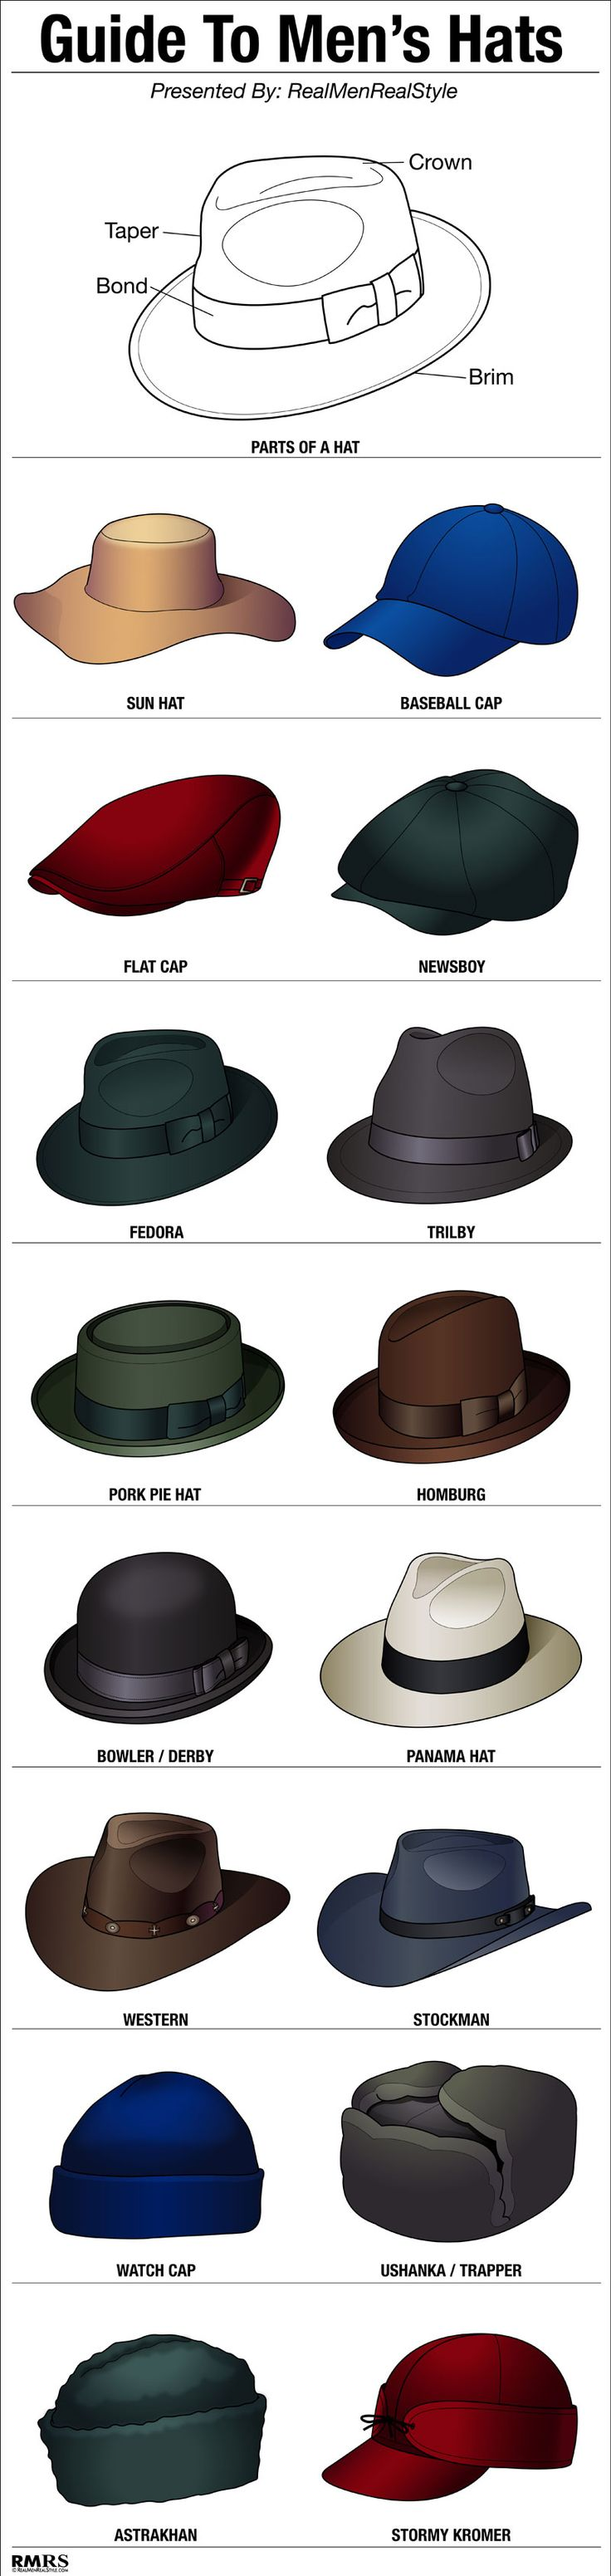 Men's Basics:  16 Stylish Men's Hats | Hat Style Guide | Man's Headwear Infographic. ===> Follow us on Pinterest for Style Tips, Men's Essentials, updates on our SALES etc... ~ VujuWear